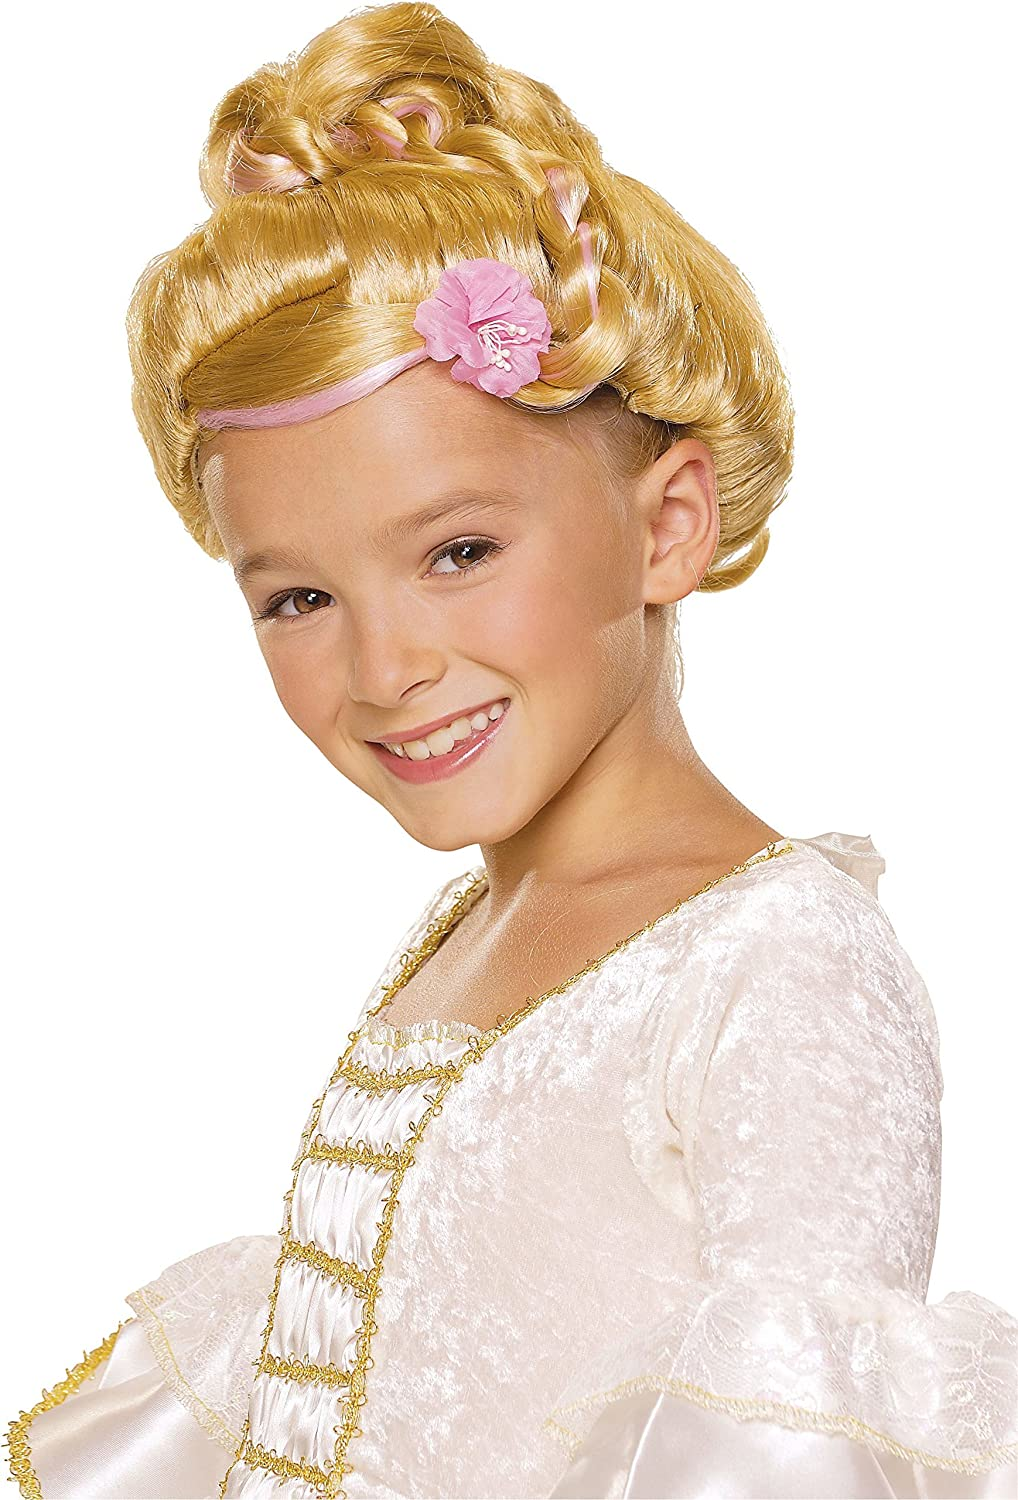 Rubie's Sophisticated Princess Child's Costume Wig, Raven Rubies - Domestic 51426